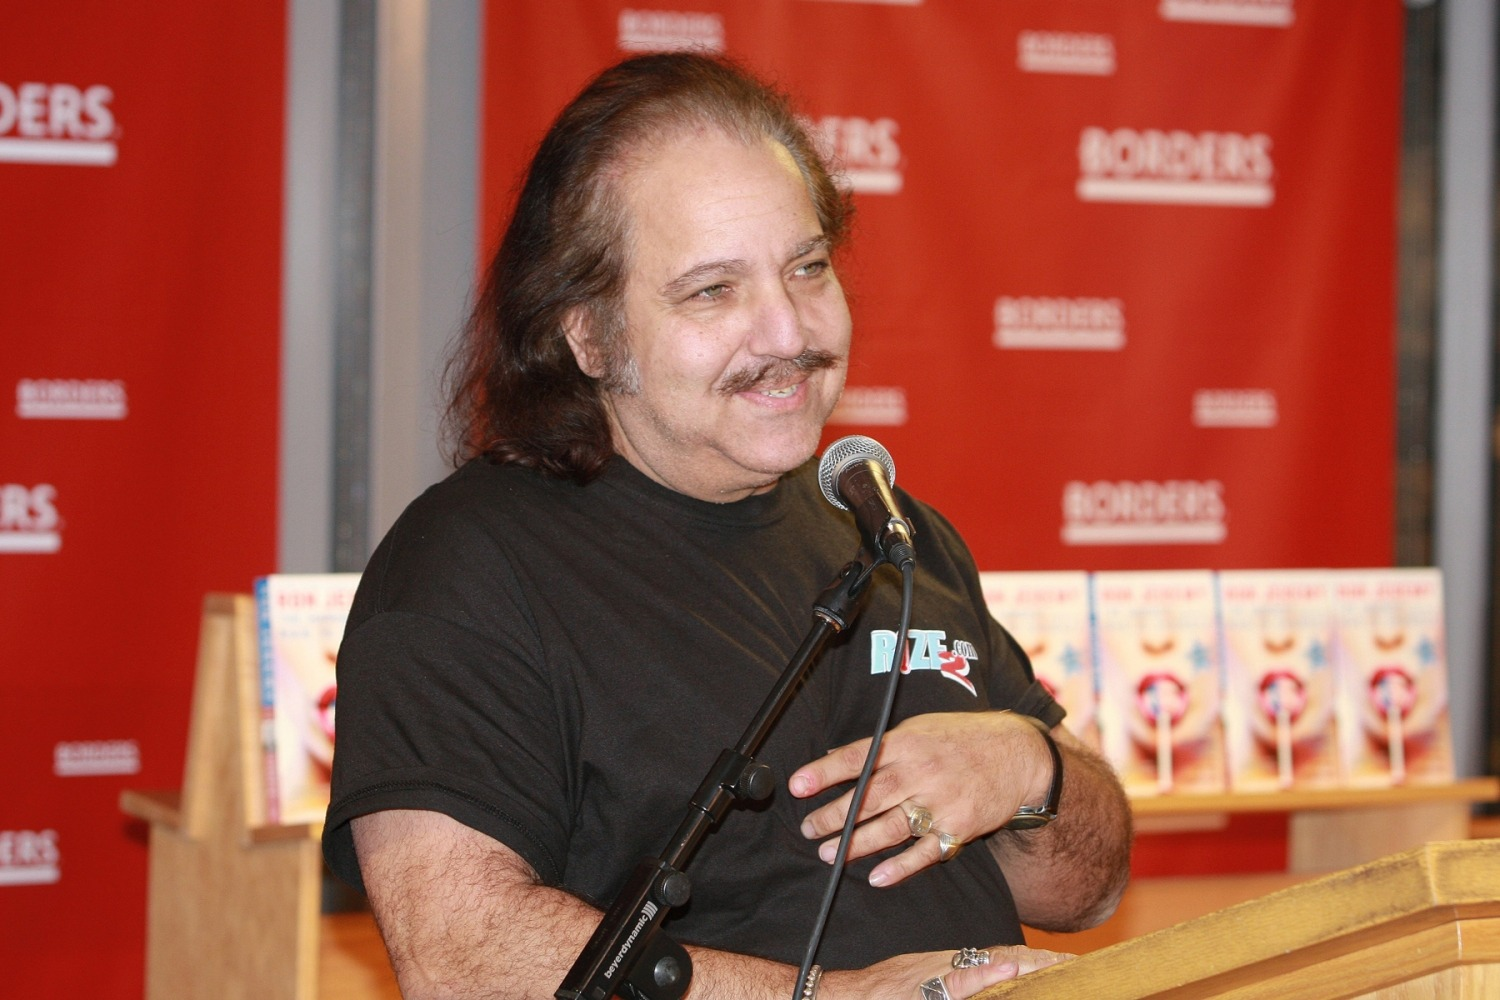 """Ron Jeremy held a discussion and book signing for his book """"The Hardest (working) Man In Showbiz"""" at Borders Books and Music in Chicago, Illinois on January 24, 2008."""